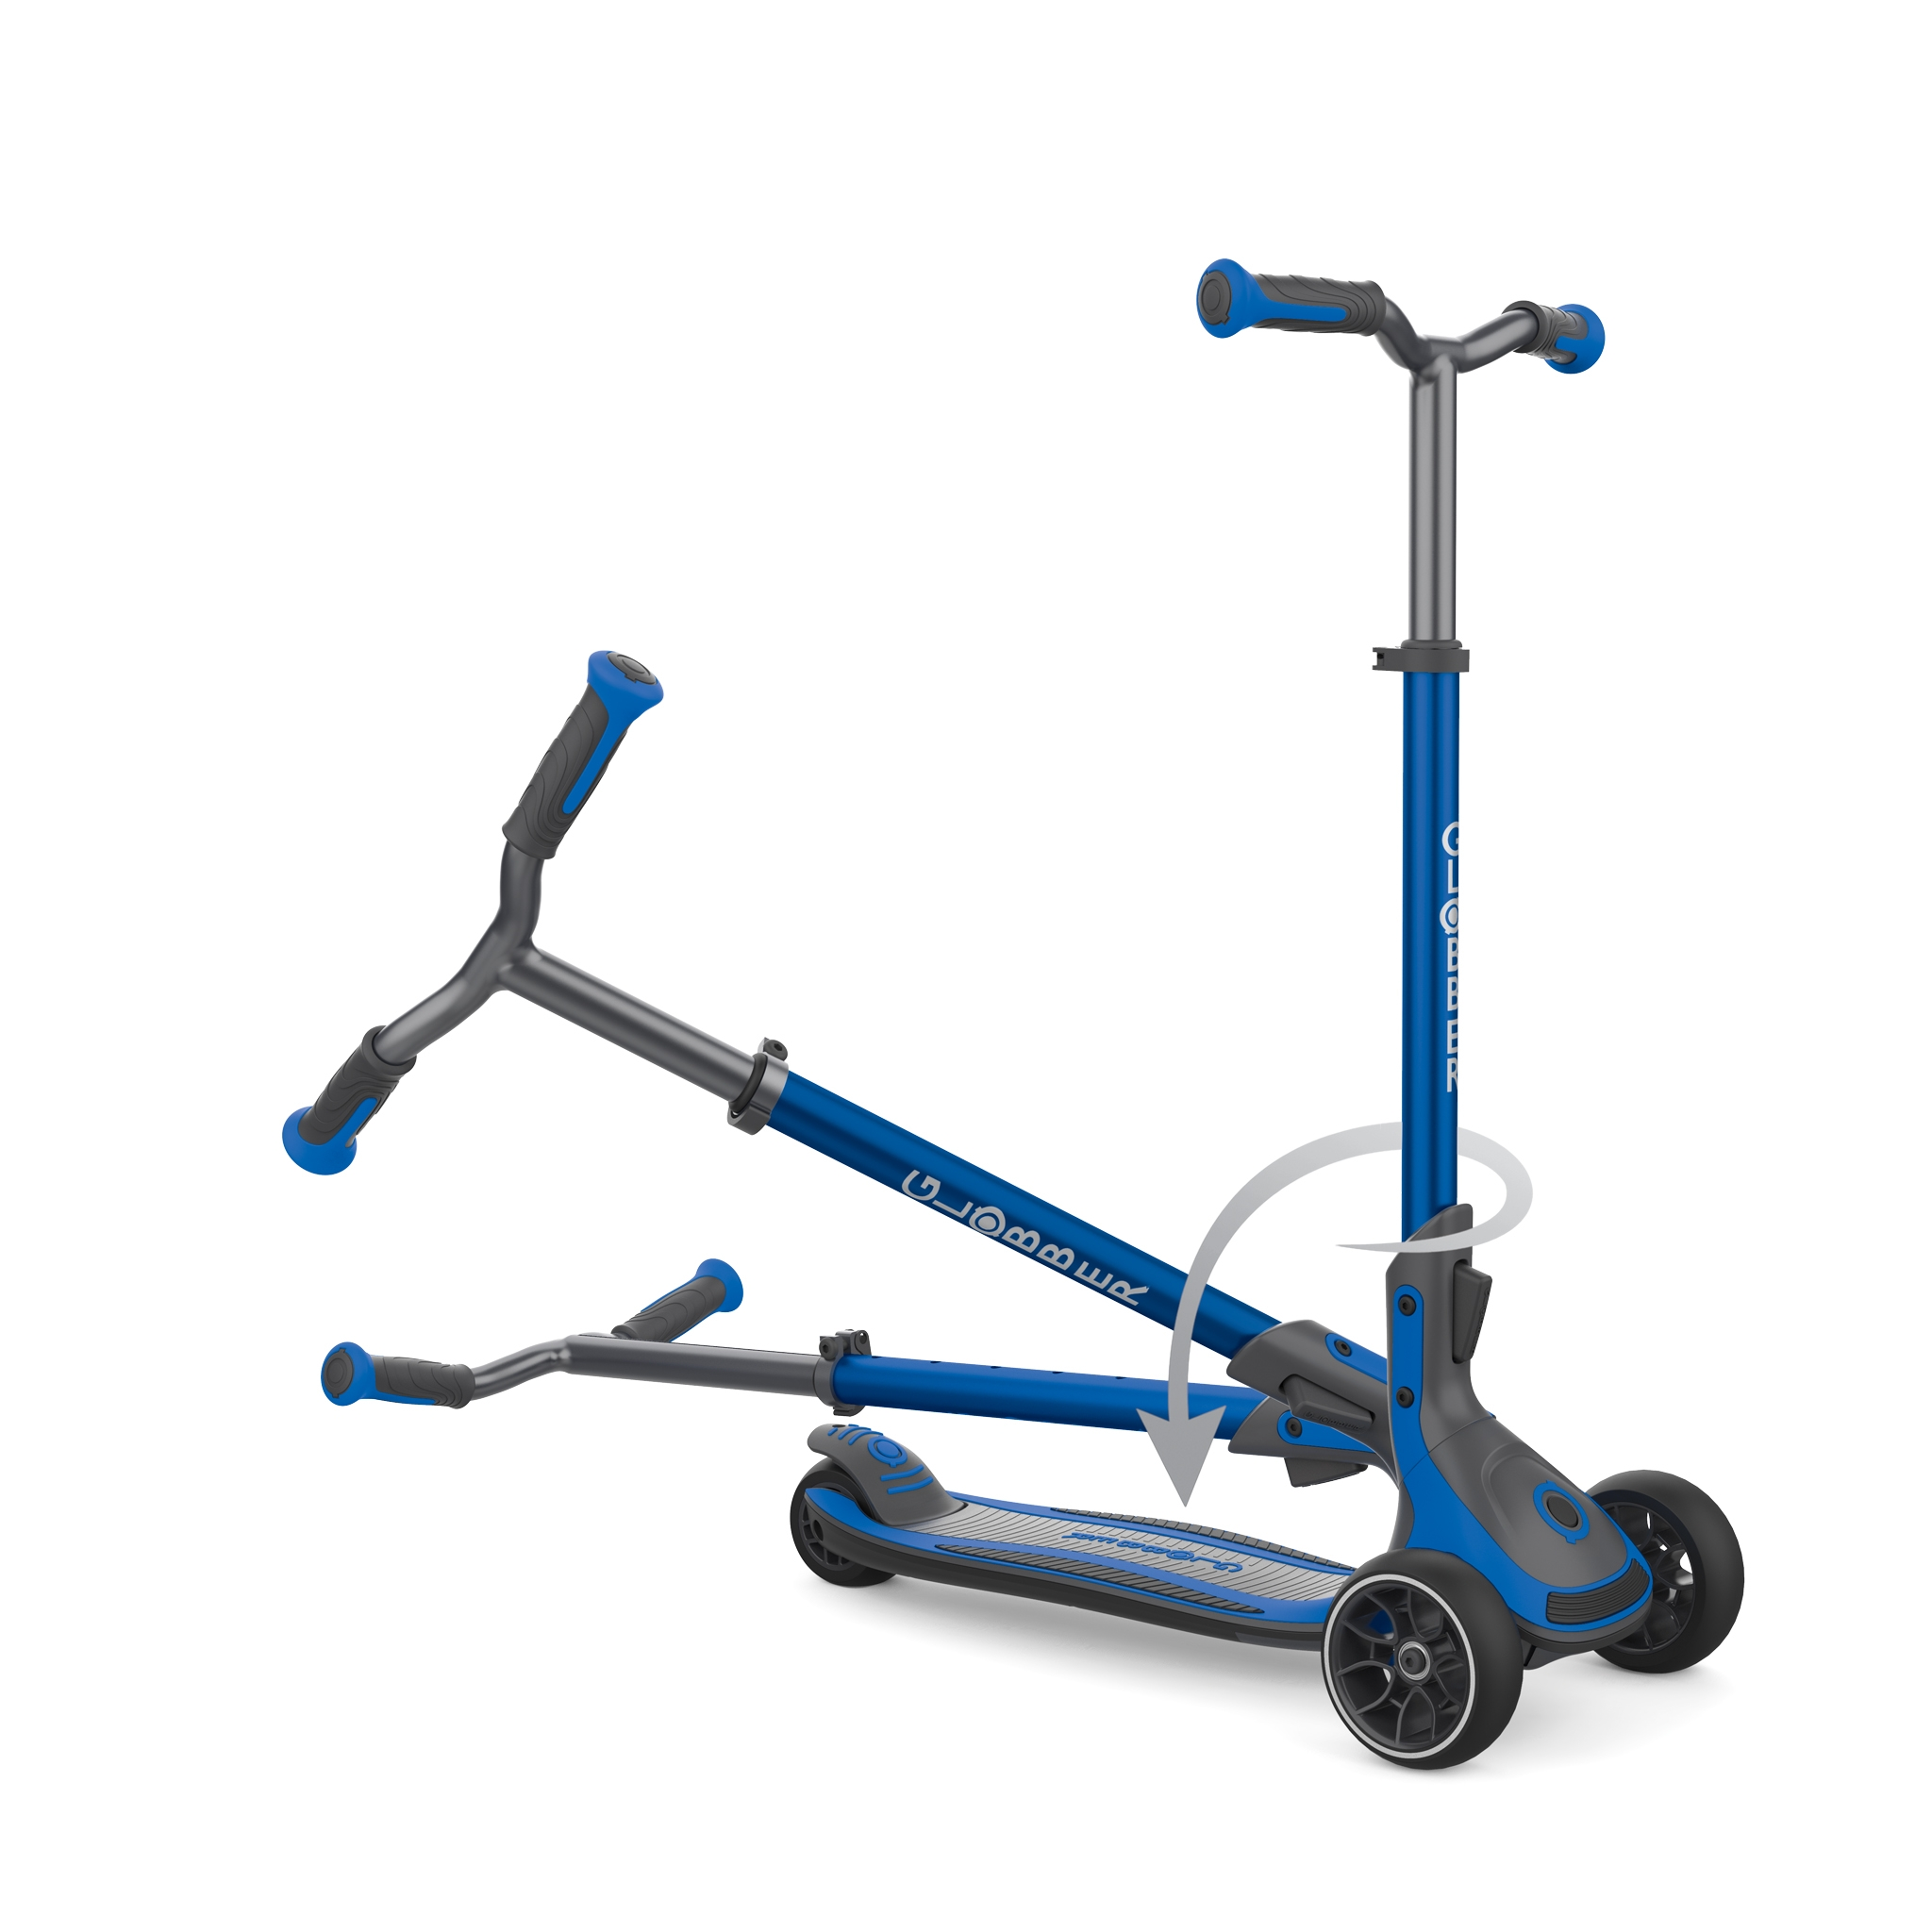 3 wheel foldable scooter for kids, teens and adults - Globber ULTIMUM 3